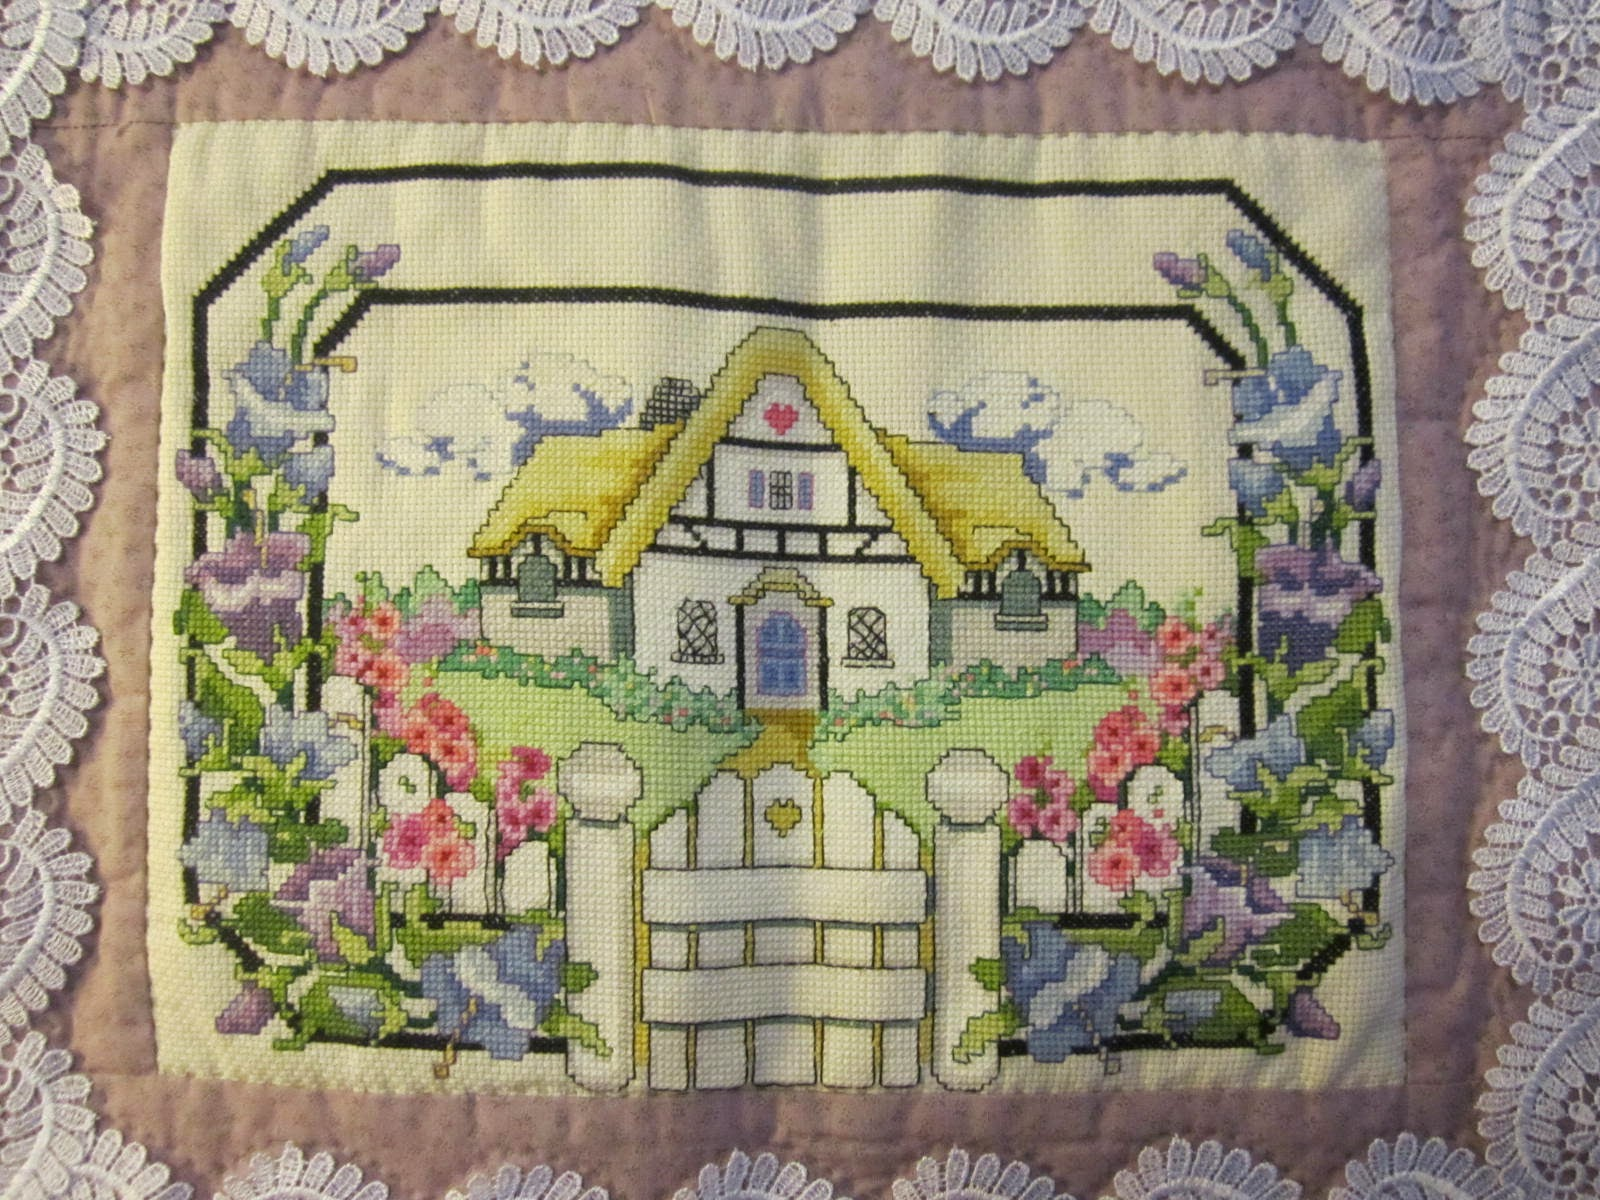 My british house (broderie)